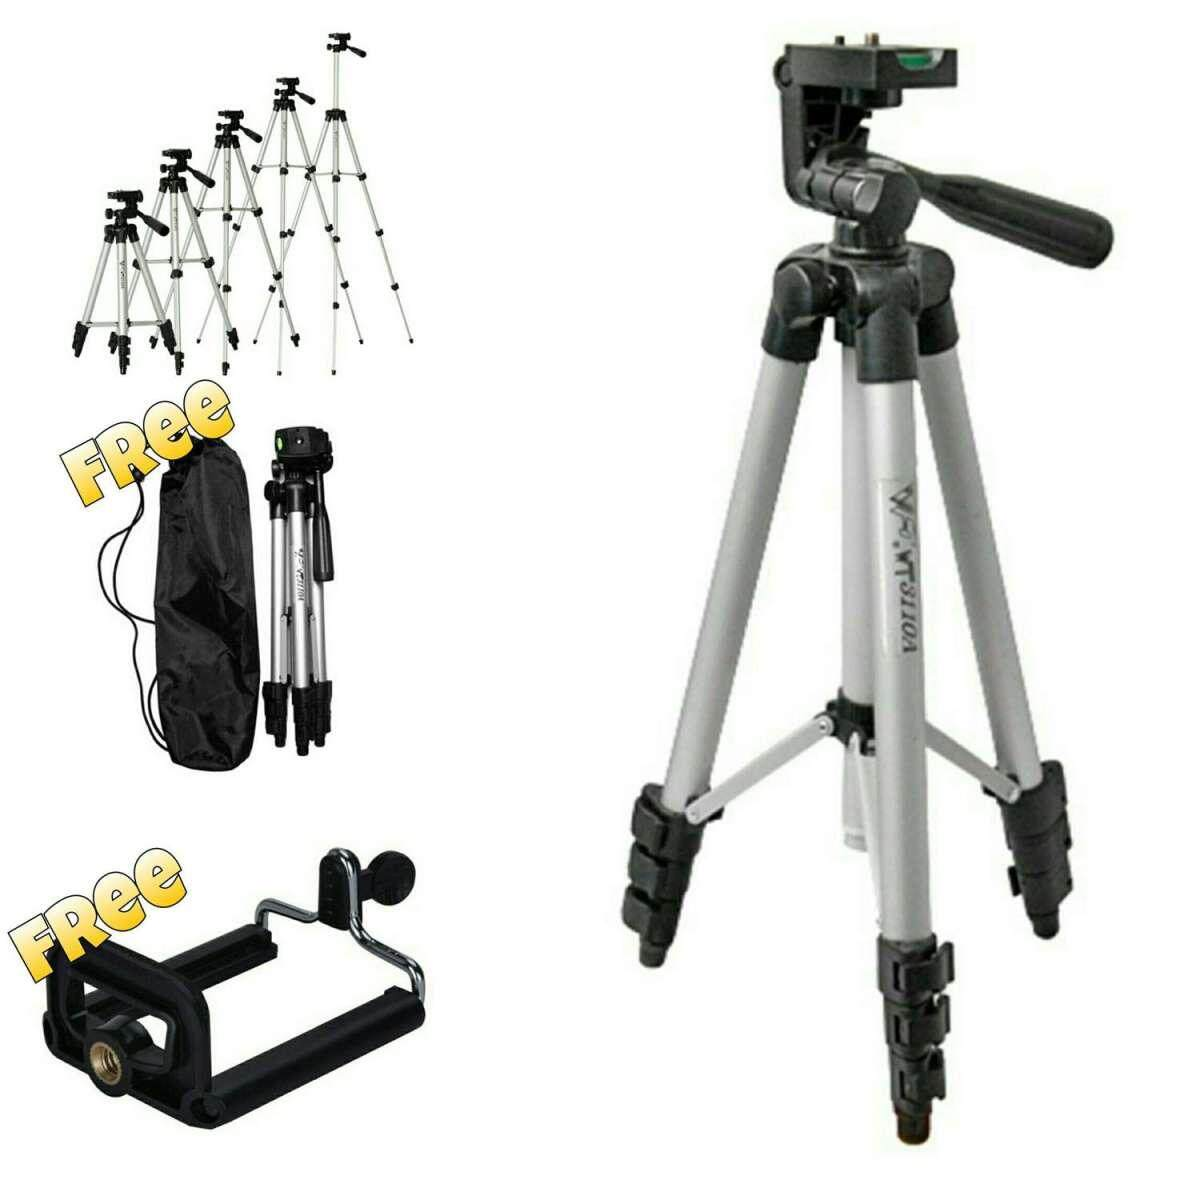 *ready Stock* Weifeng Wt-3110a Compact Lightweight Aluminum Flexible Tripod + Free Mobile Holder And Tripod Bag By Fly Automart.